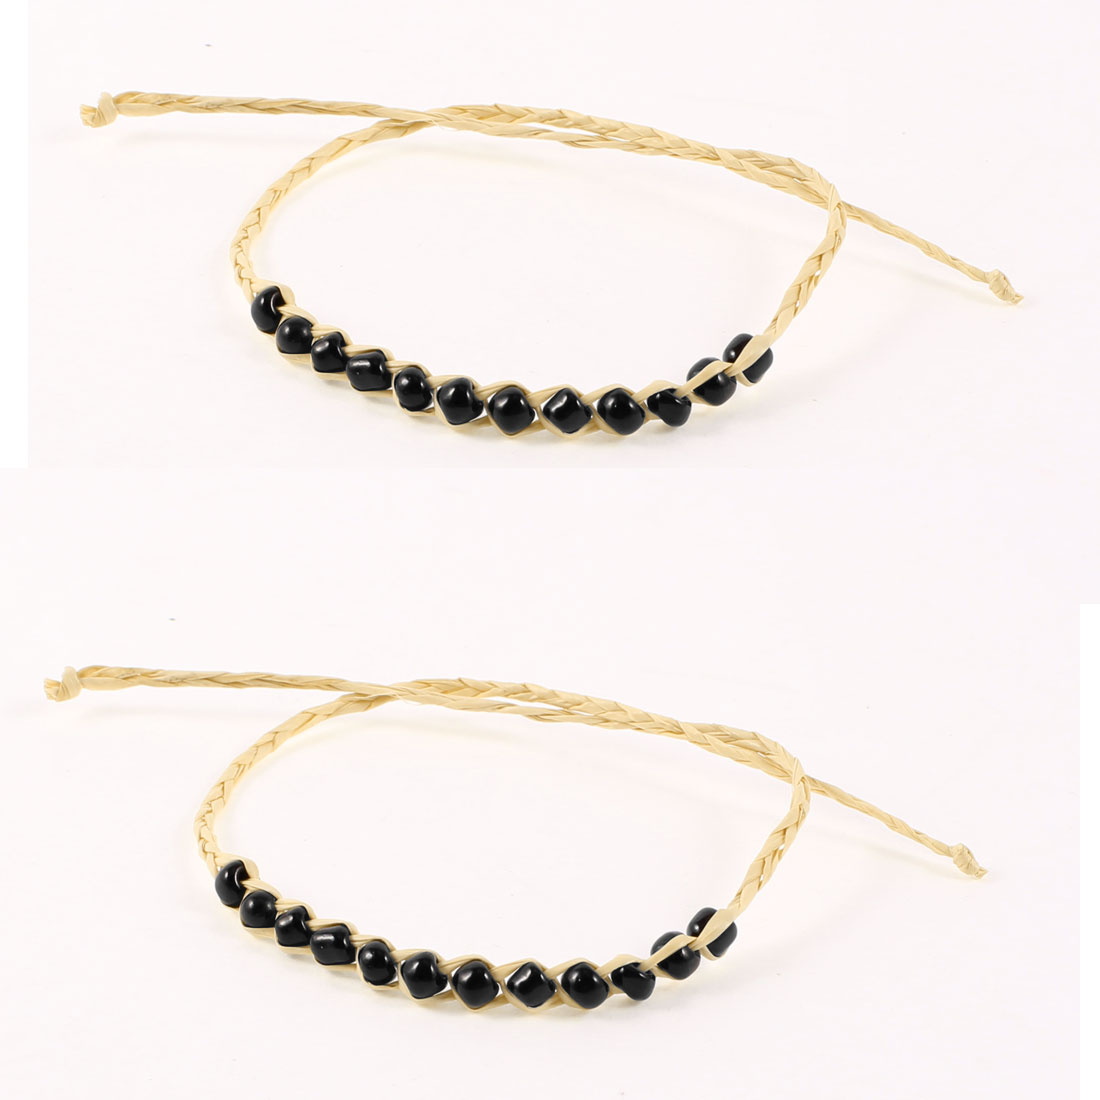 Black Beige Shiny Beads Detailing Lucky Straw Band Bracelets Bangle 2PCS